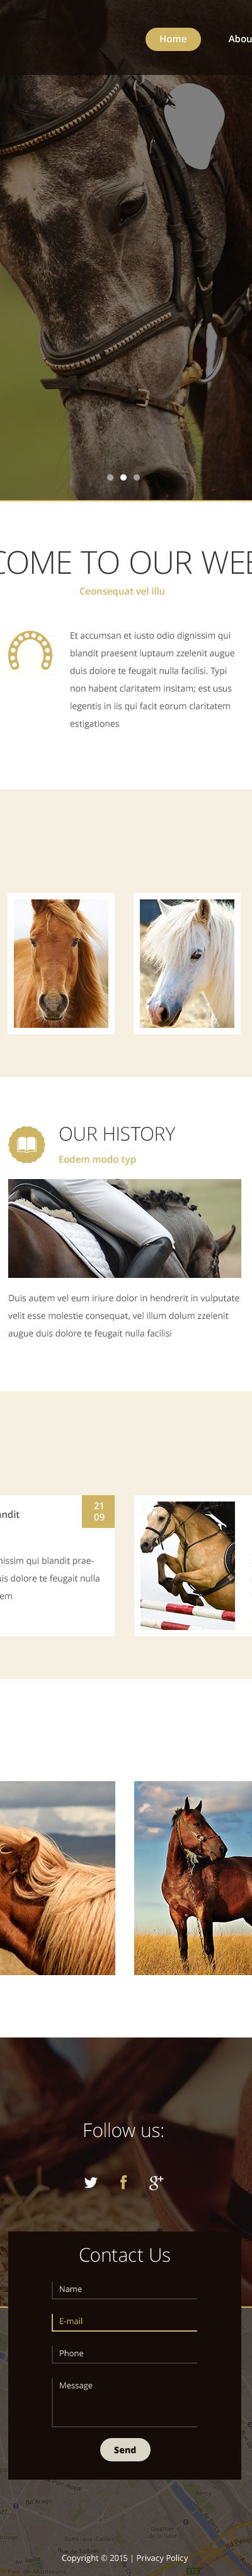 Horse Breeder Website Template